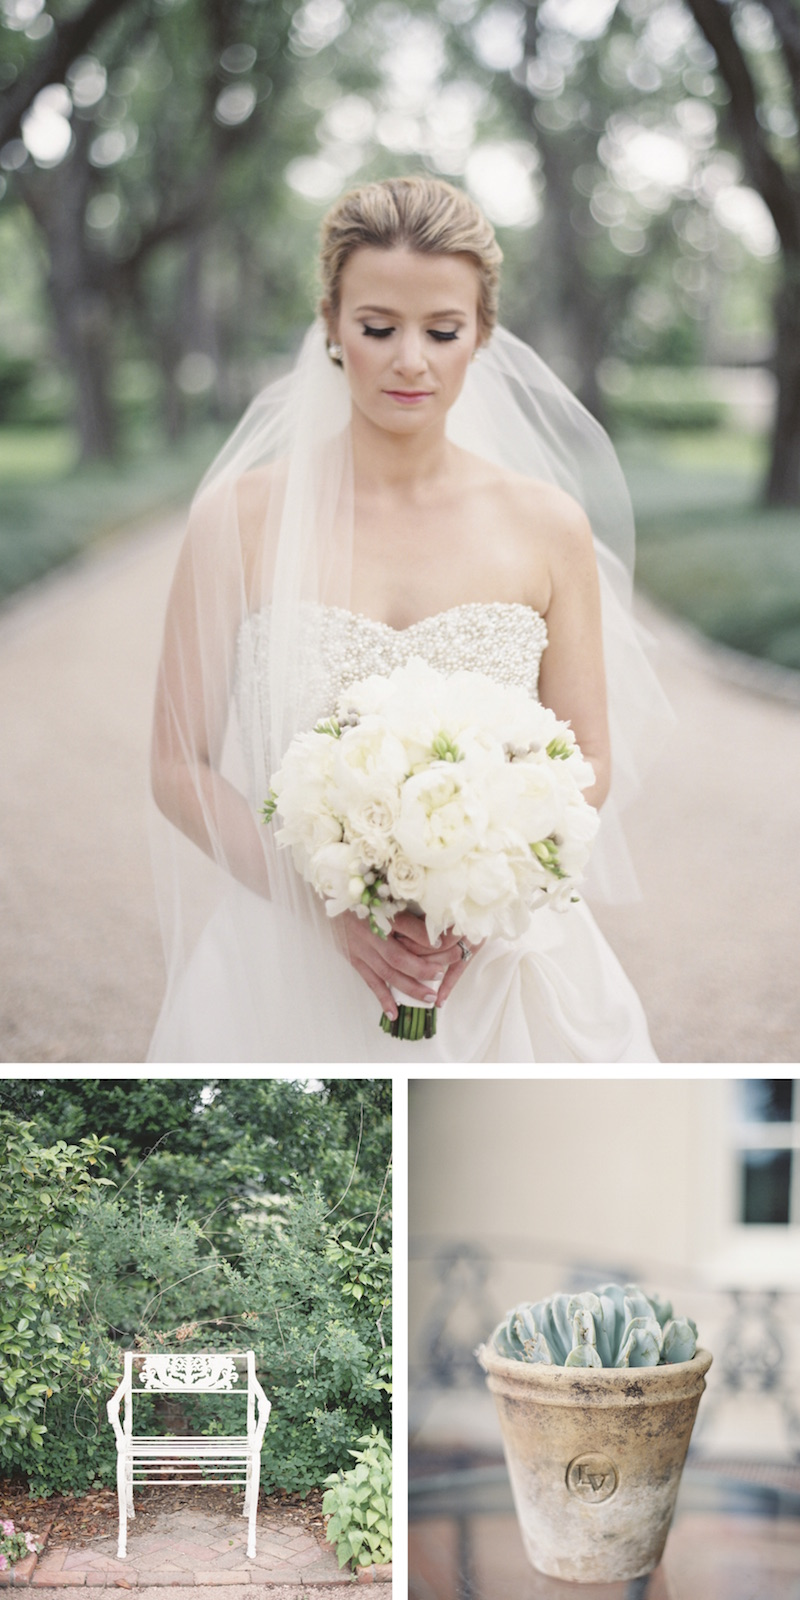 Heidi Elnora wedding dress photos